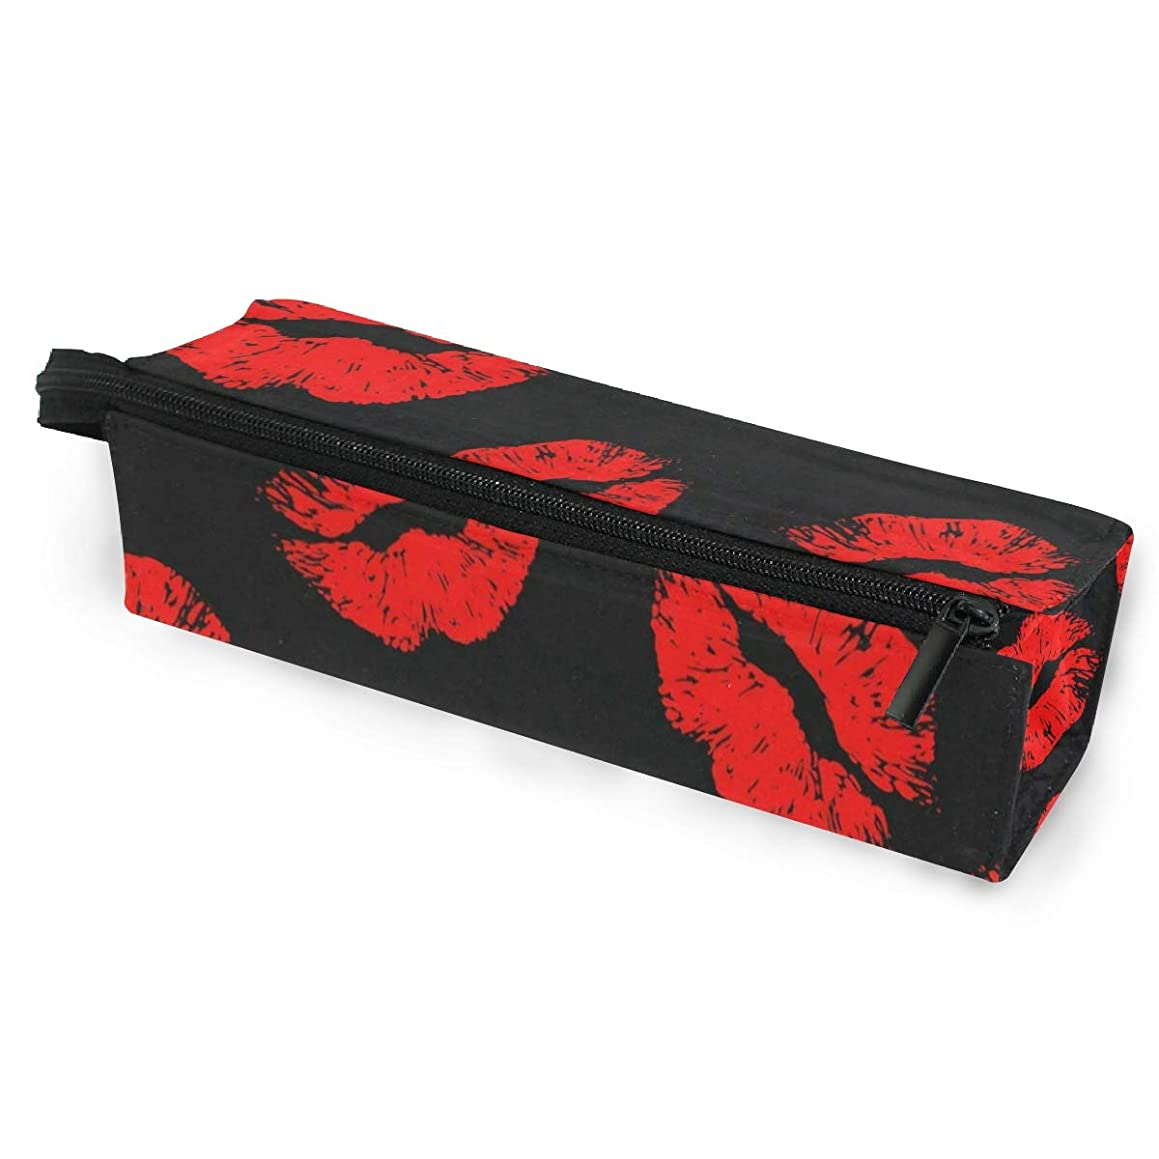 Glasses Case Red Lip Multi-Function Zippered Pencil Box Makeup Cosmetic Bag for Women